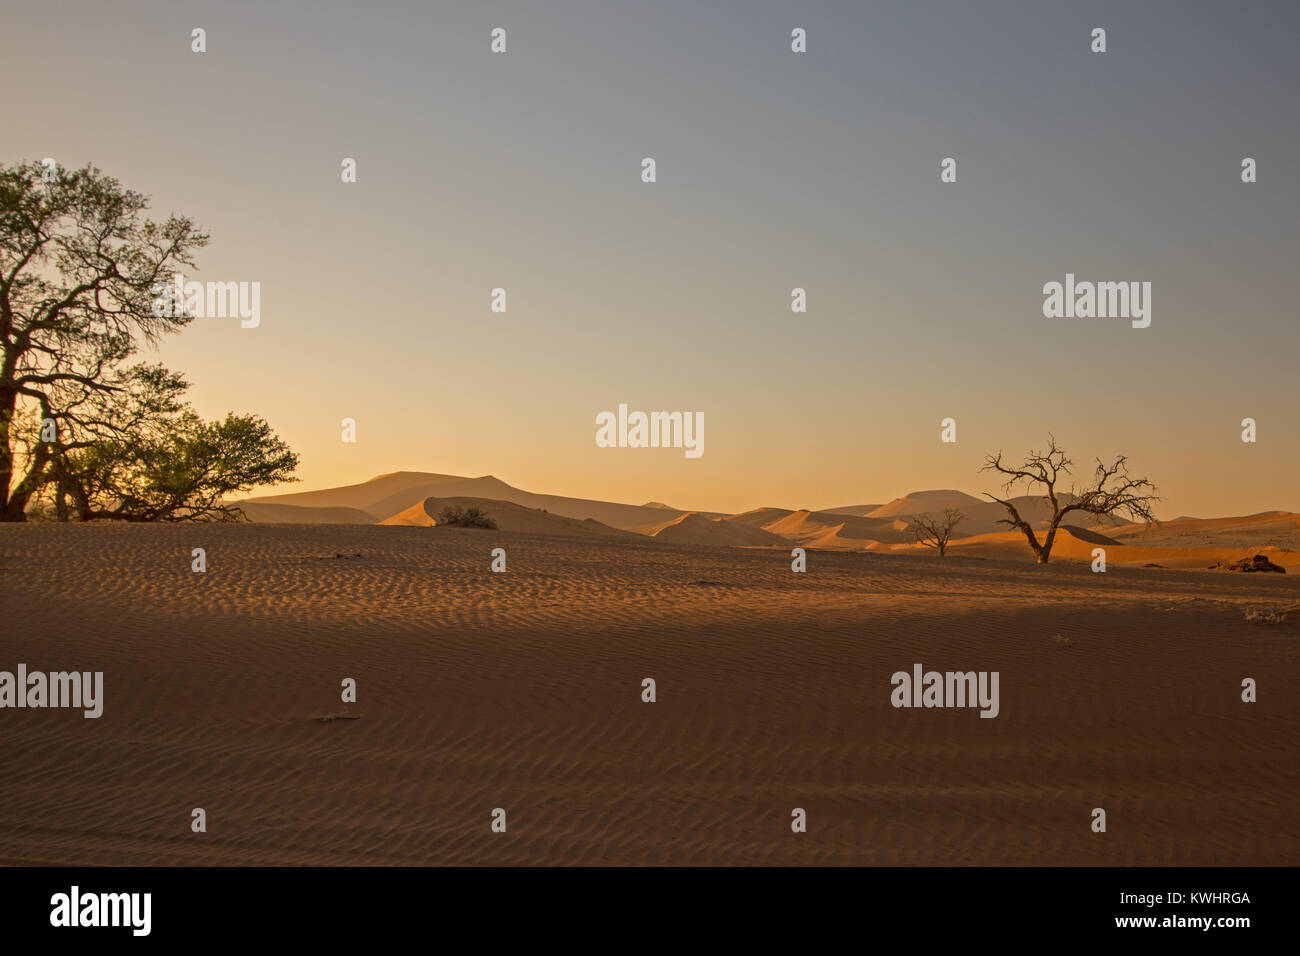 Beautiful sunrise in the sand dunes of Sossusvlei in the Namib desert in Namibia. Lovely ghostly soft lighting. - Stock Image